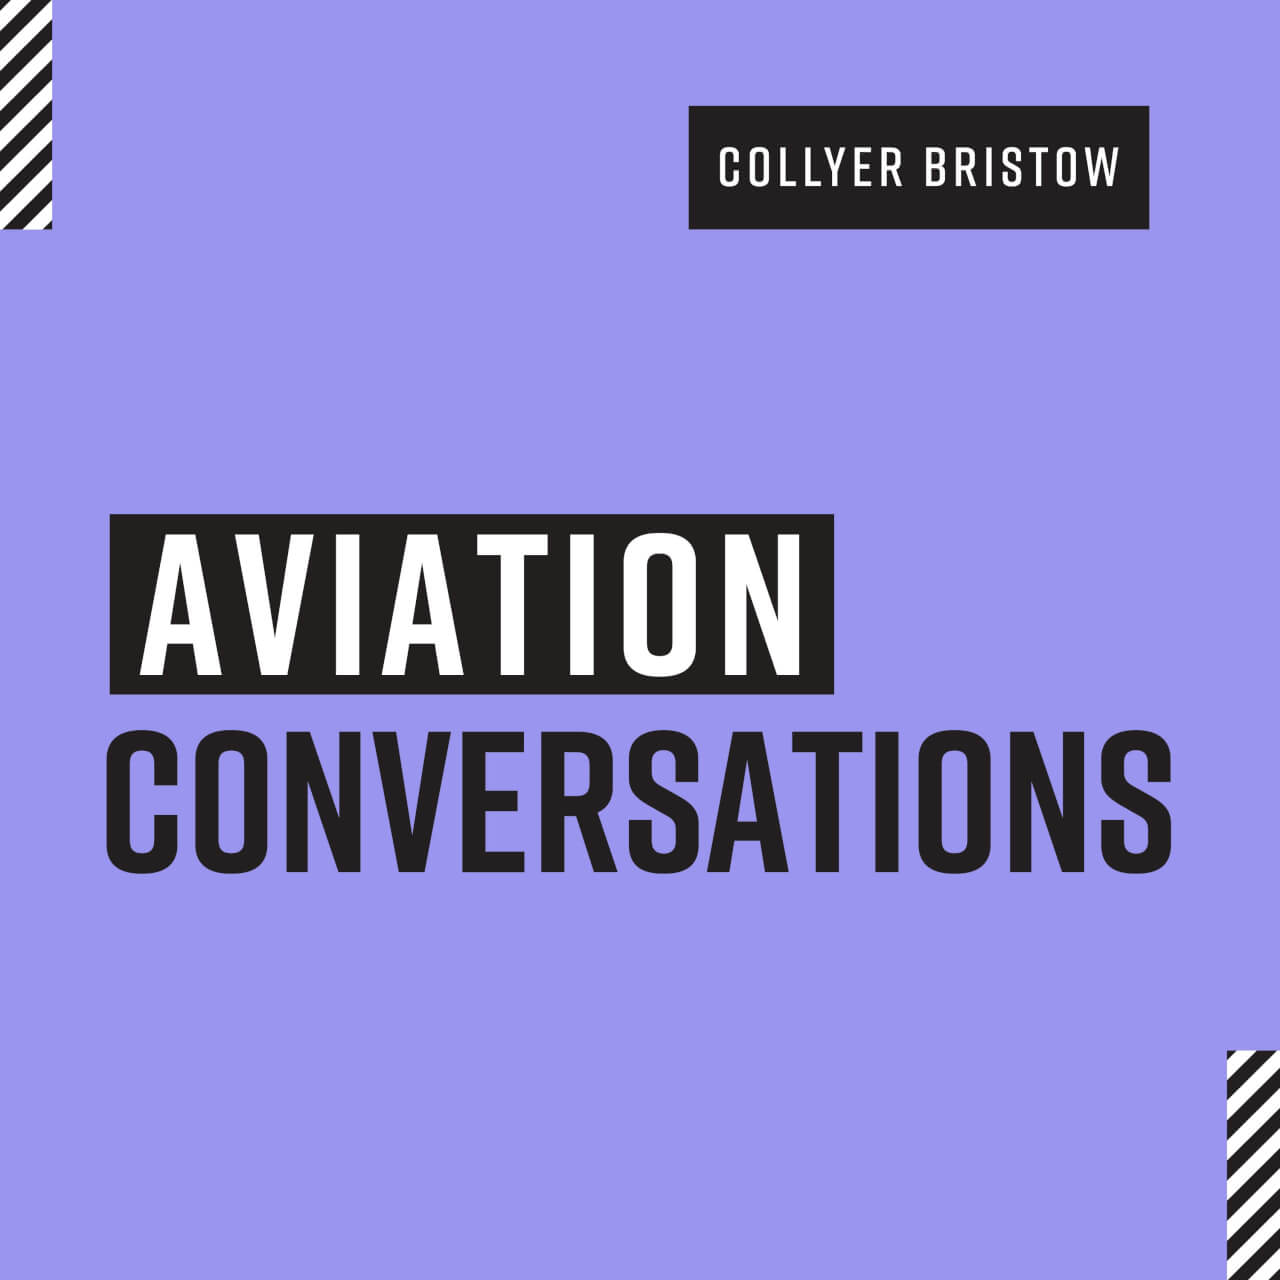 Aviation Conversations: Return to the Skies